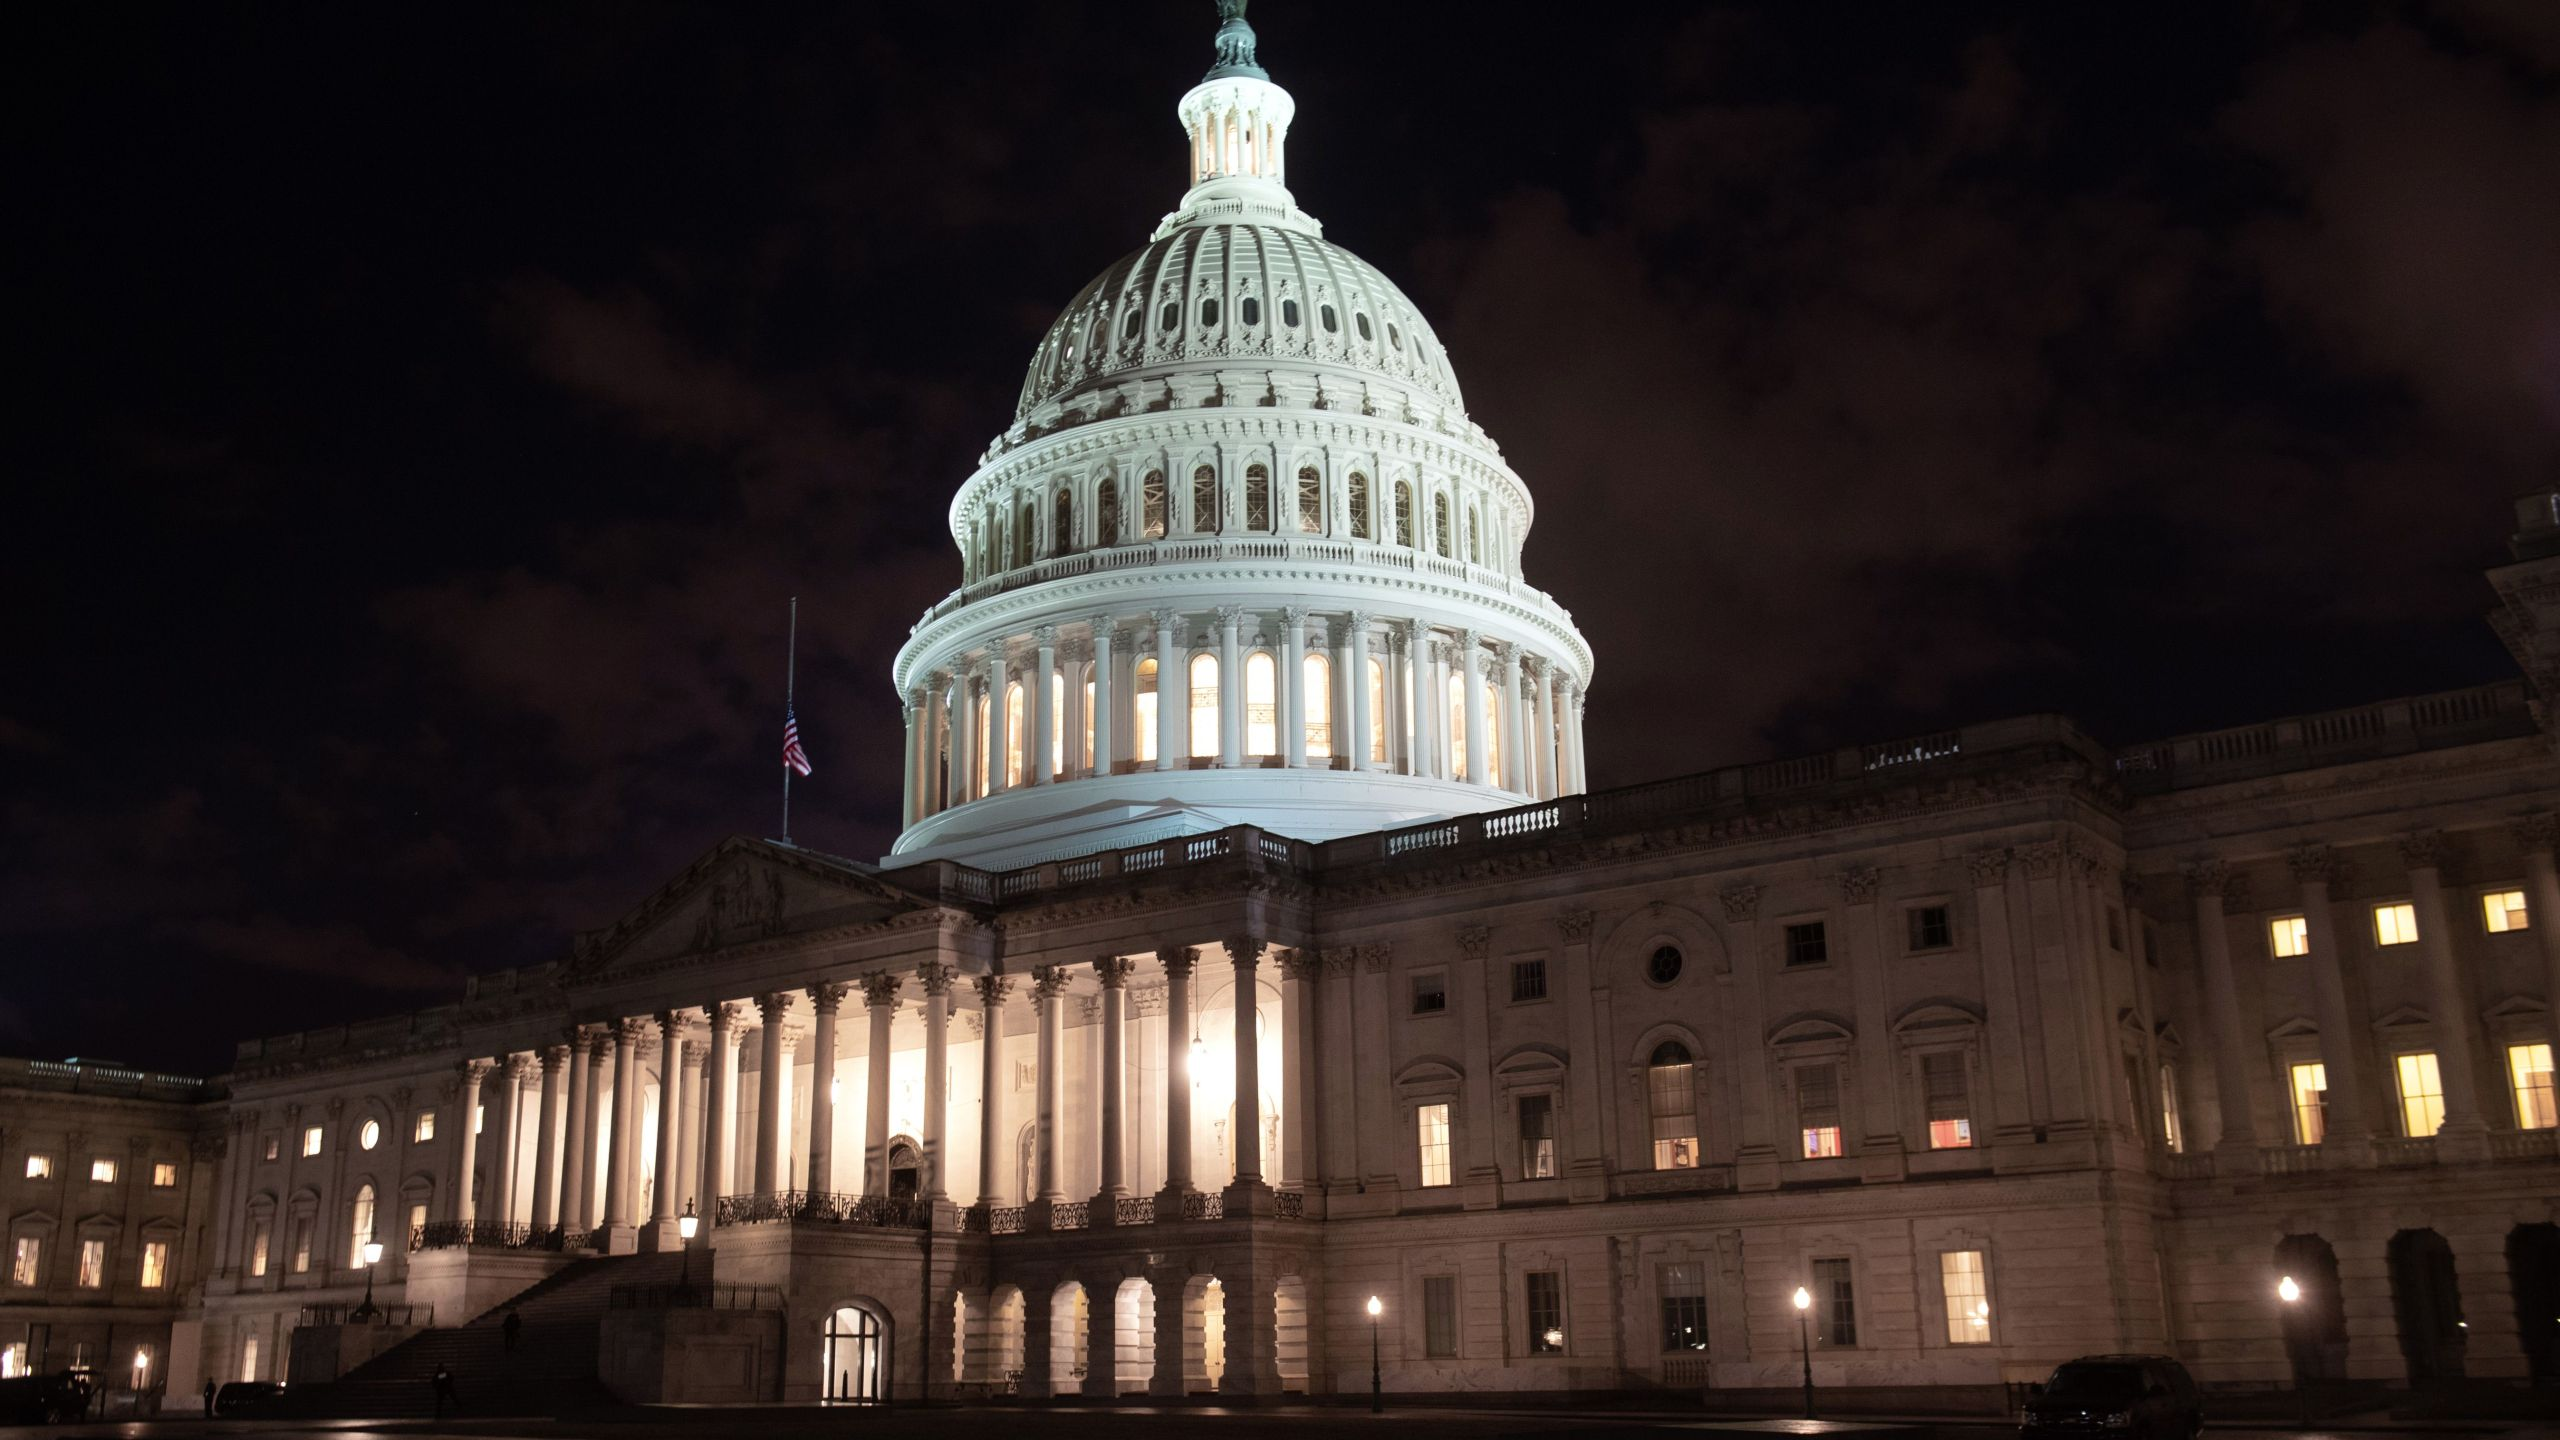 The U.S. Capitol is seen ahead of the partial government shutdown, in Washington, D.C., Dec. 21, 2018. (Credit: SAUL LOEB/AFP/Getty Images)